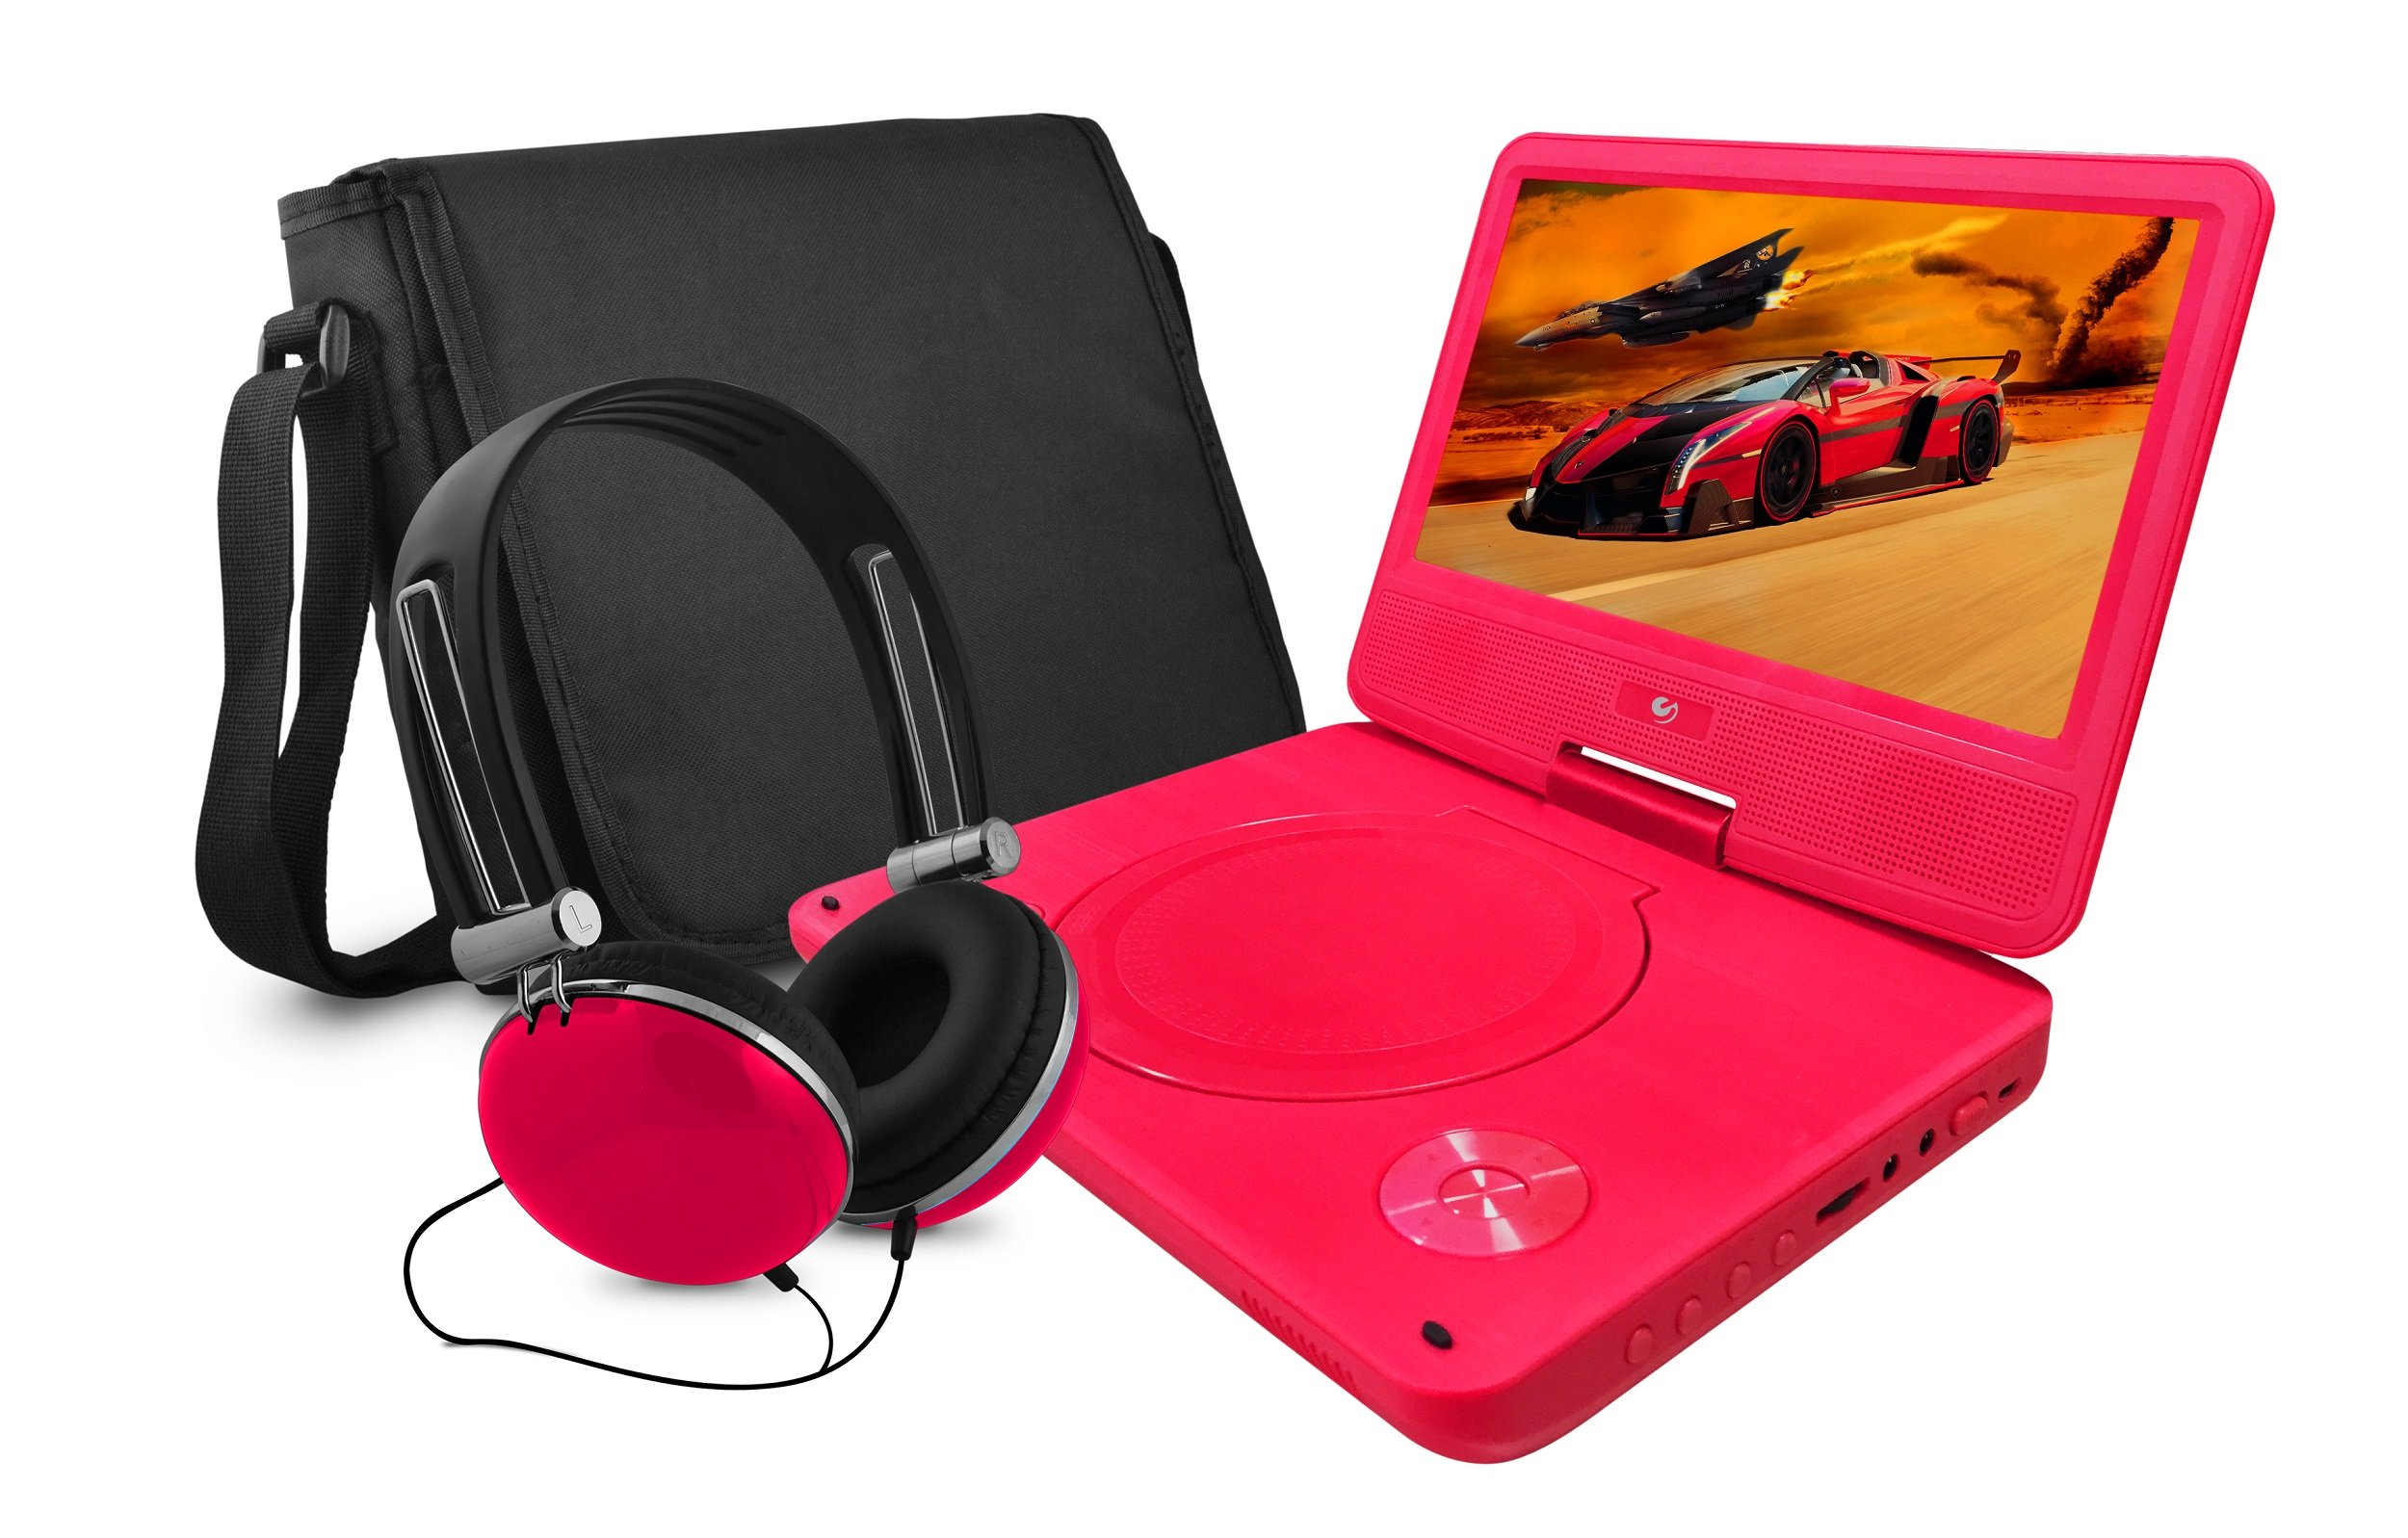 Ematic EPD929RD Portable DVD Player with 9-Inch Swivel Screen, Micro USB Cord, Headphones and Travel Bag, Red